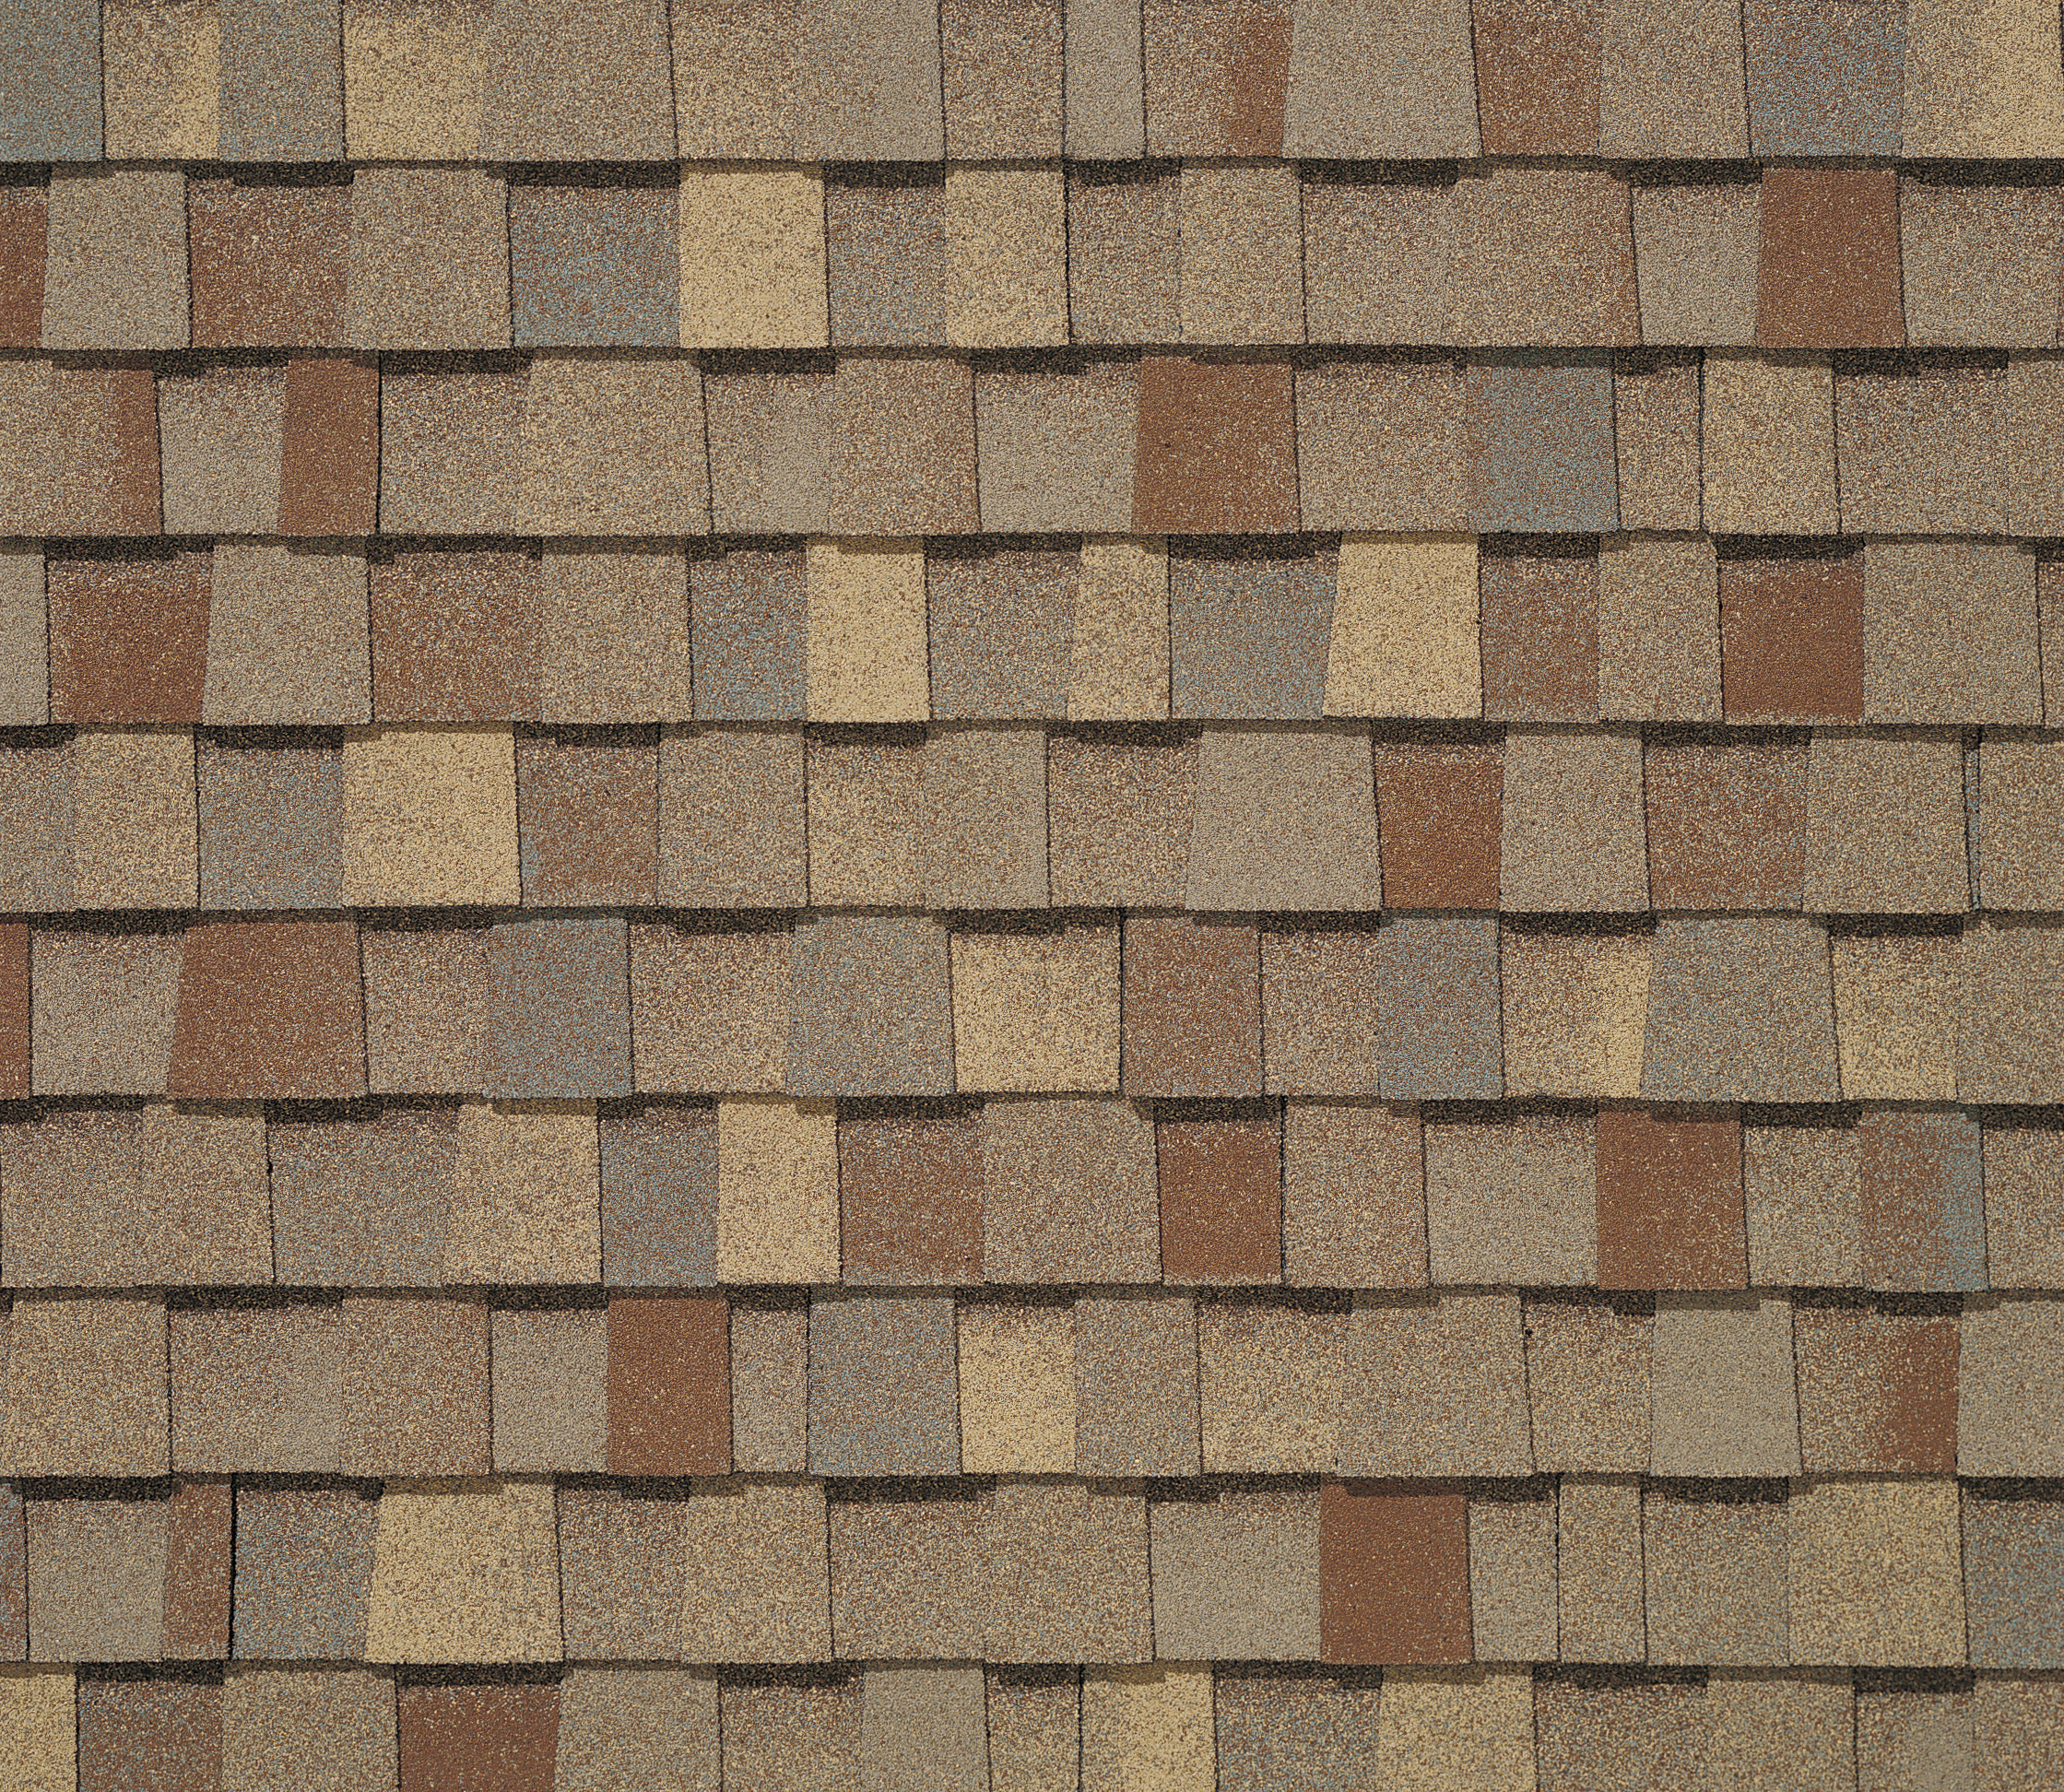 Grand island roofing builders for Tamko shingles